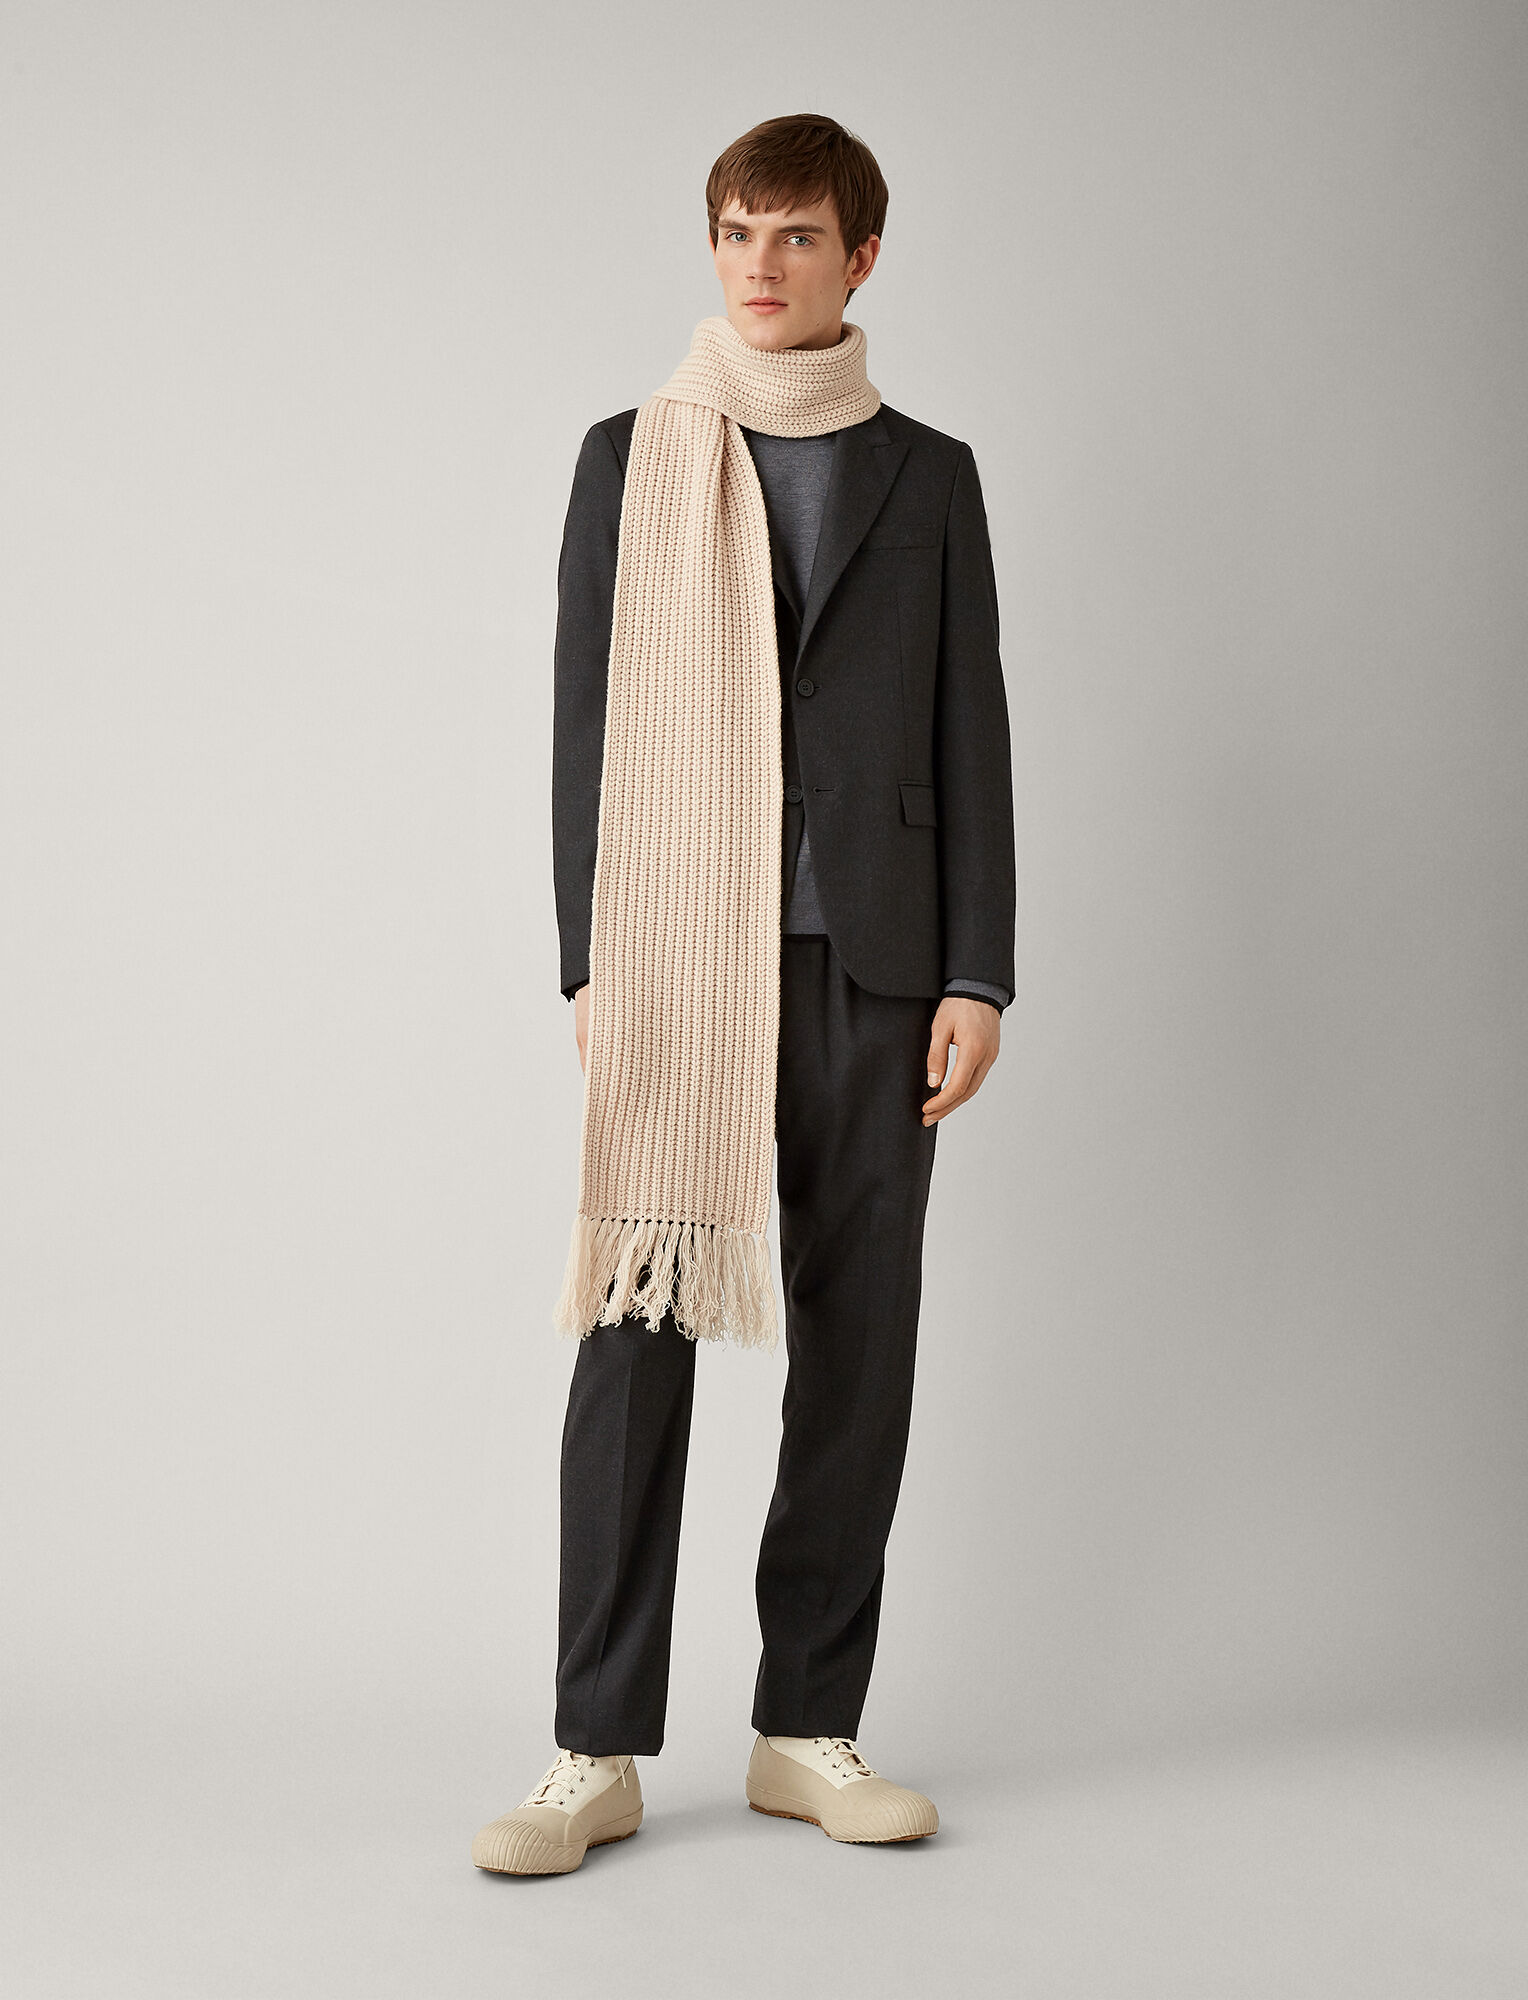 Joseph, Cannes Flannel Stretch Jacket, in CHARCOAL